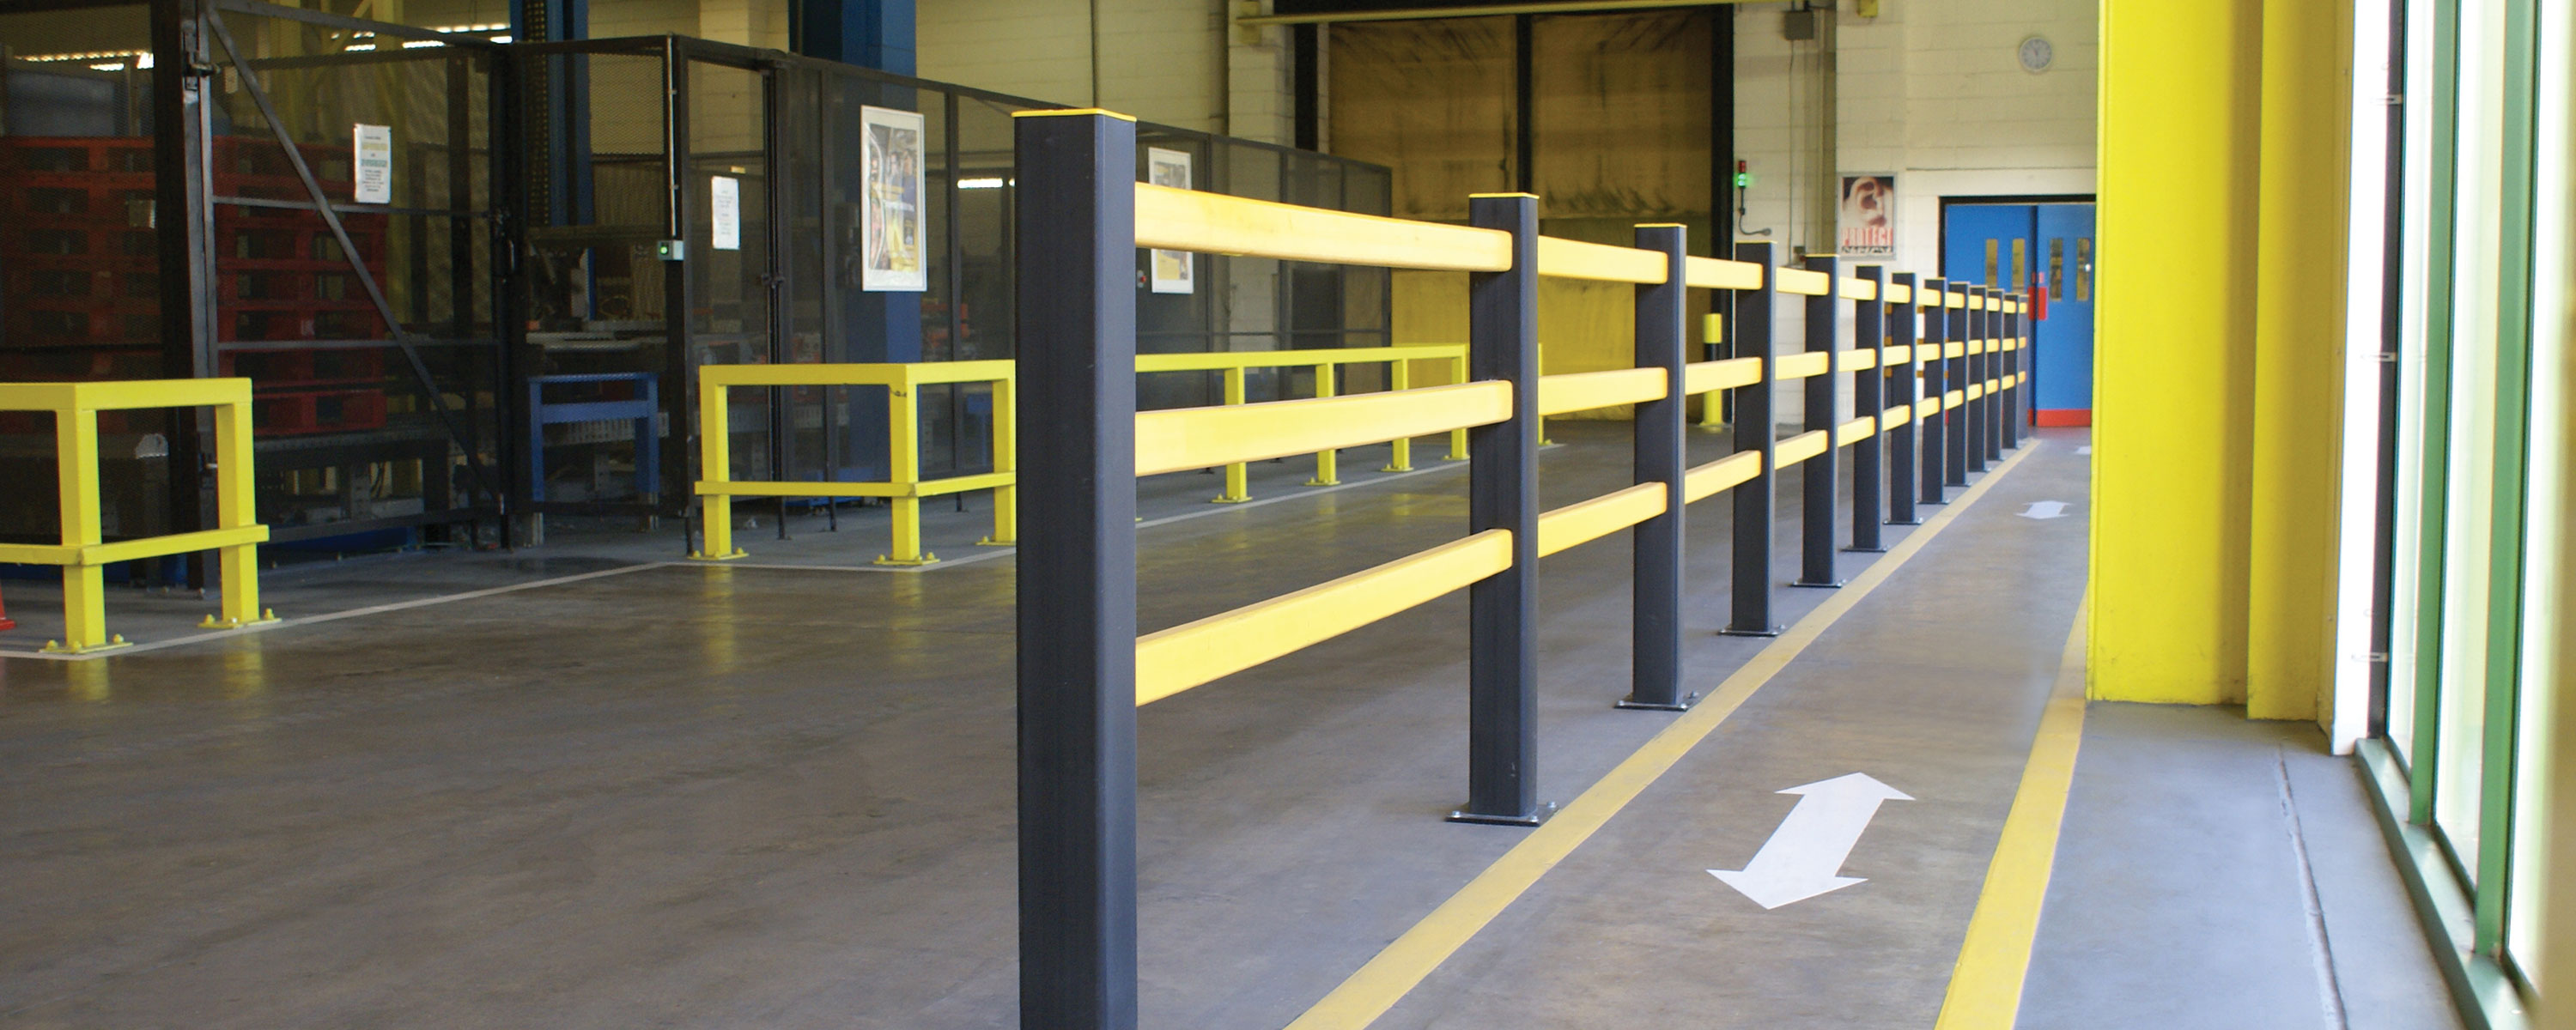 """A-SAFE has proved to be the most cost-efficient solution for our safety barriers, but this is just a bonus. The most essential benefit is that their solutions provide the highest standards of safety so that our team feel at ease in their working environment. The highly-visible yellow barriers have a smart, attractive appearance and have proved to have excellent durability."""